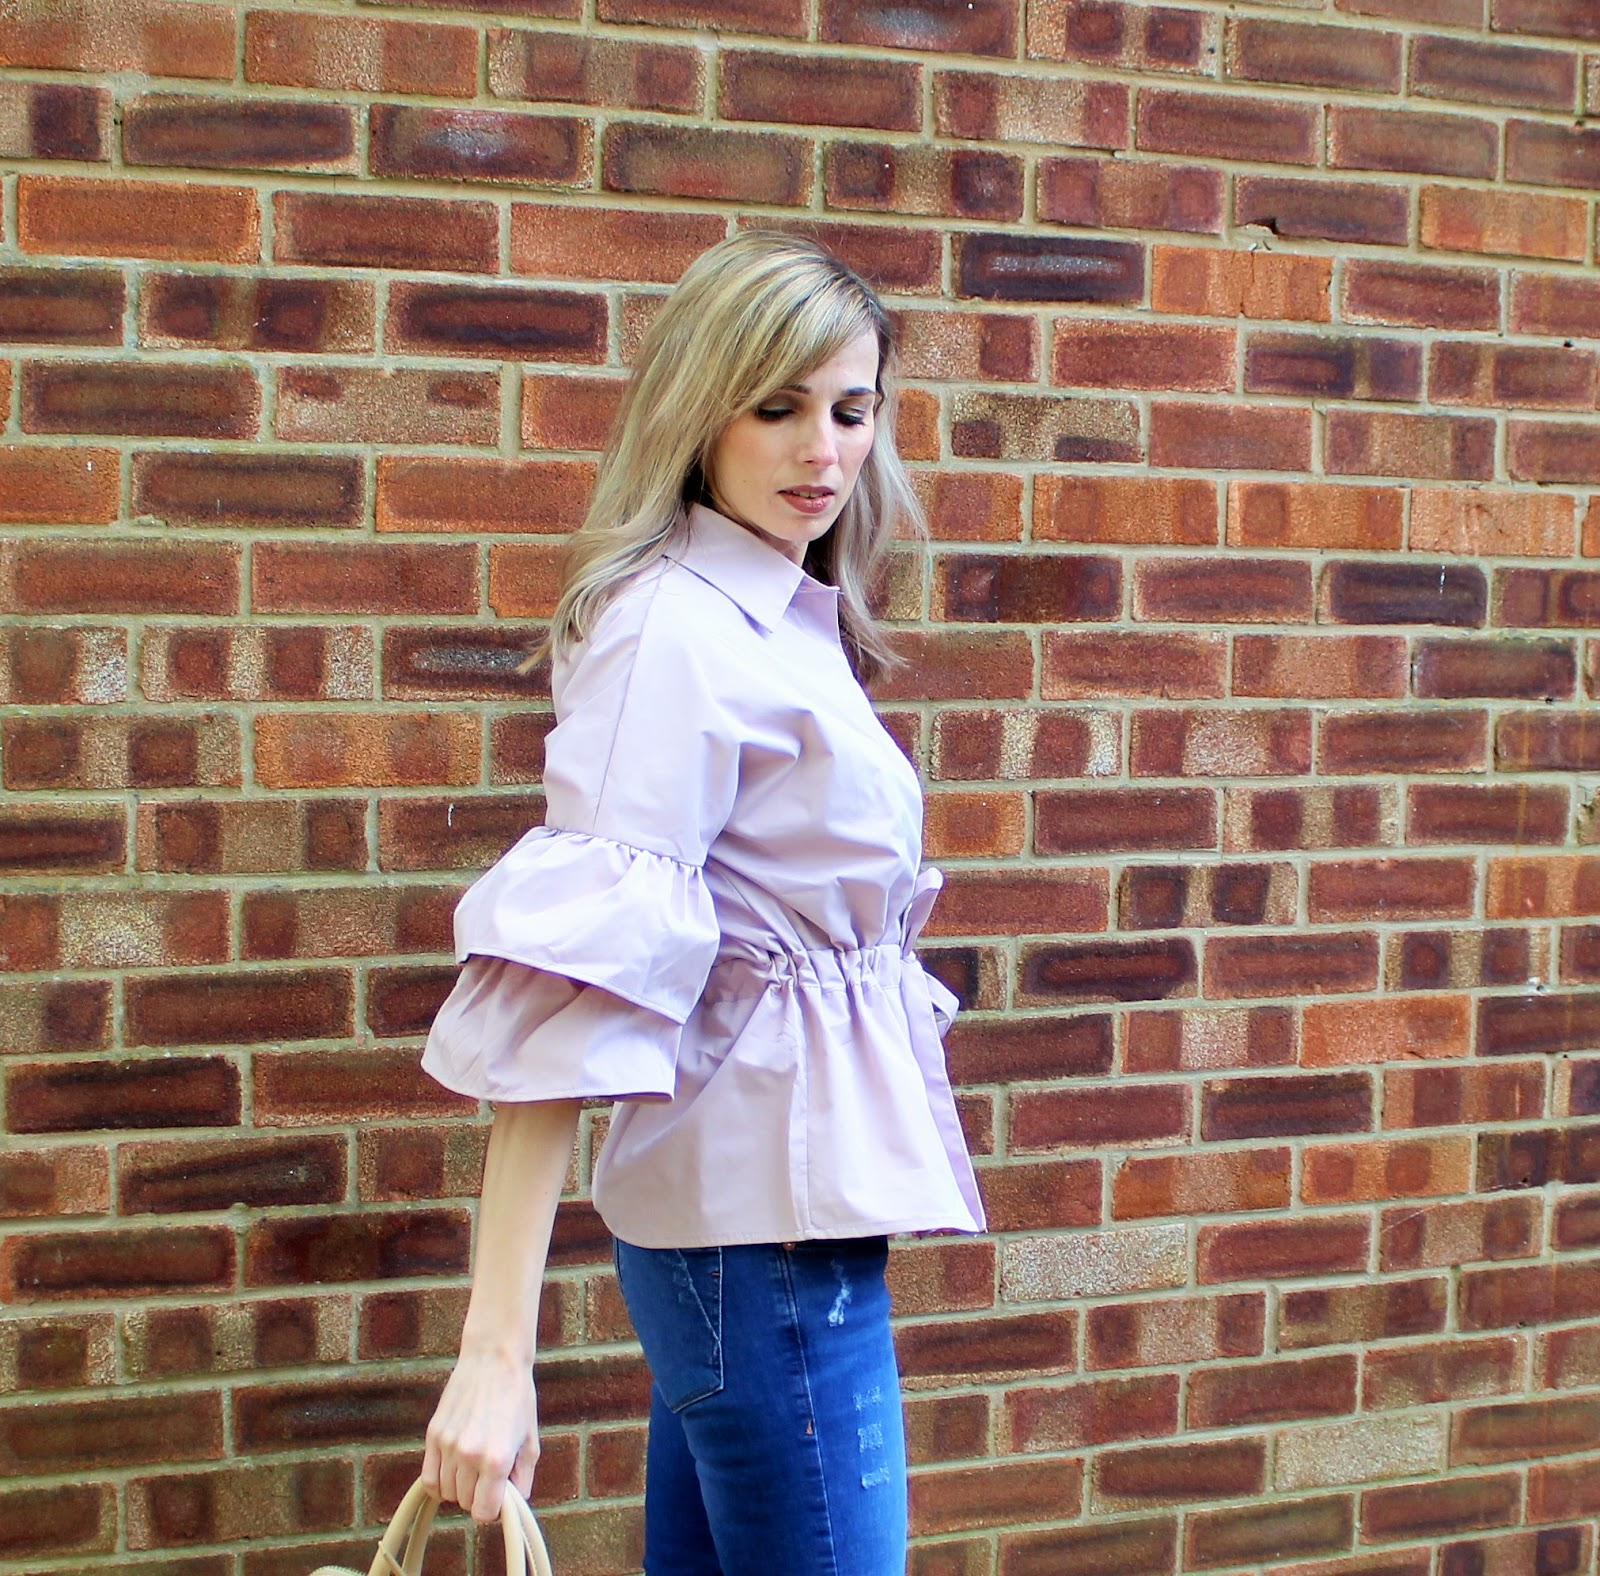 OOTD featuring a ruffled Shein blouse in blush pink - 1